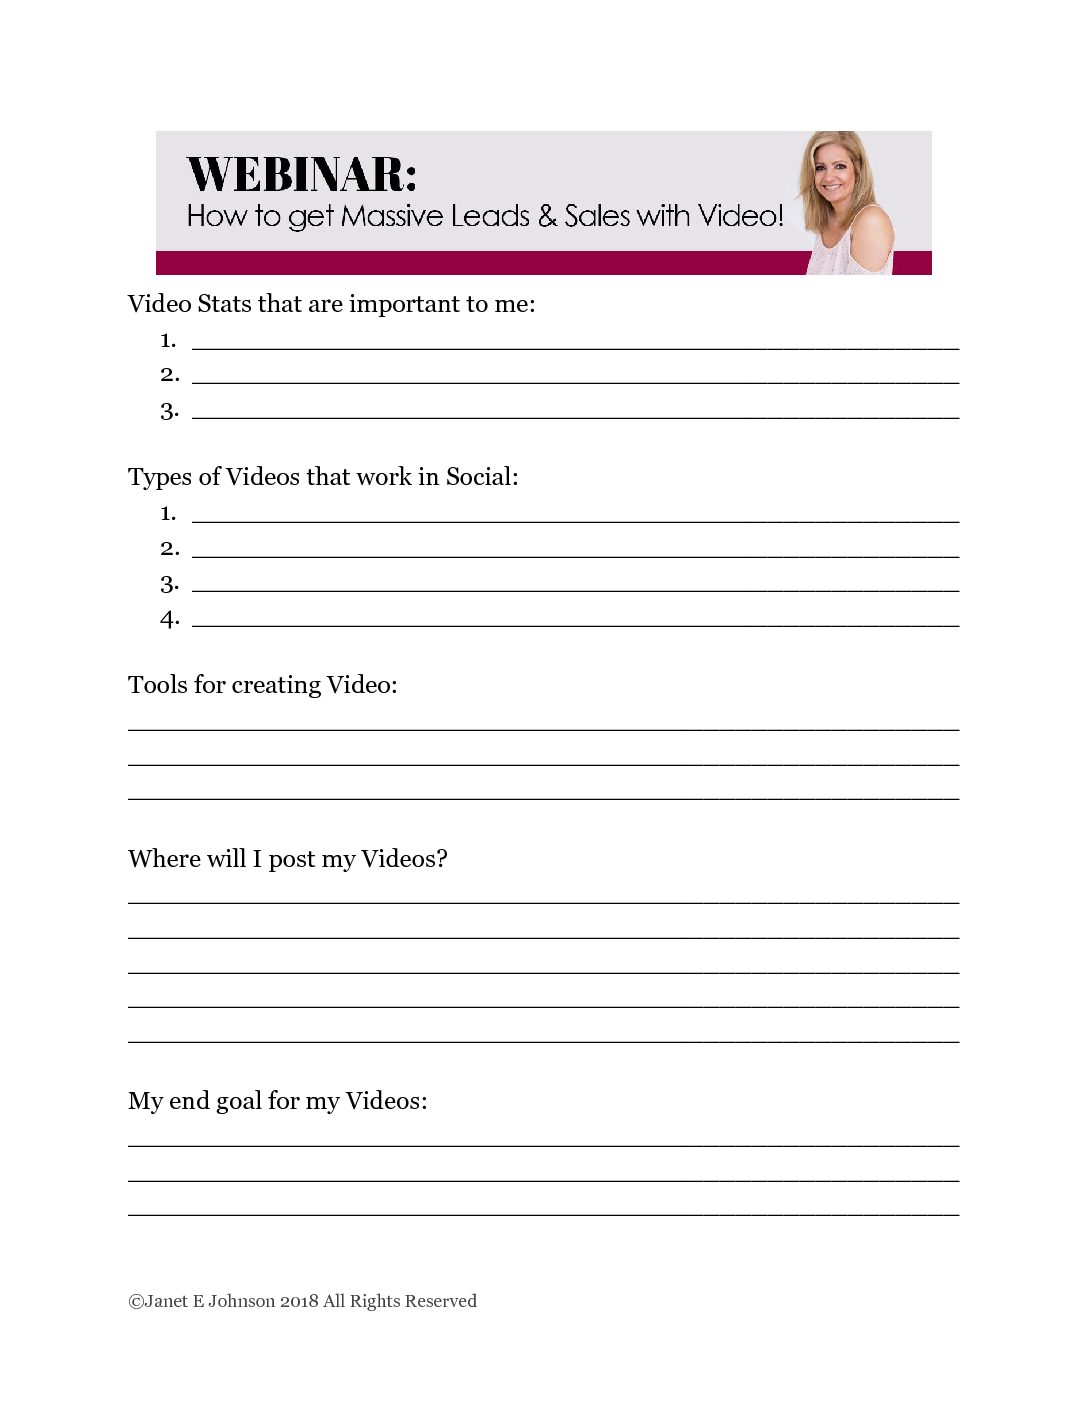 Facebook Video Webinar Worksheet